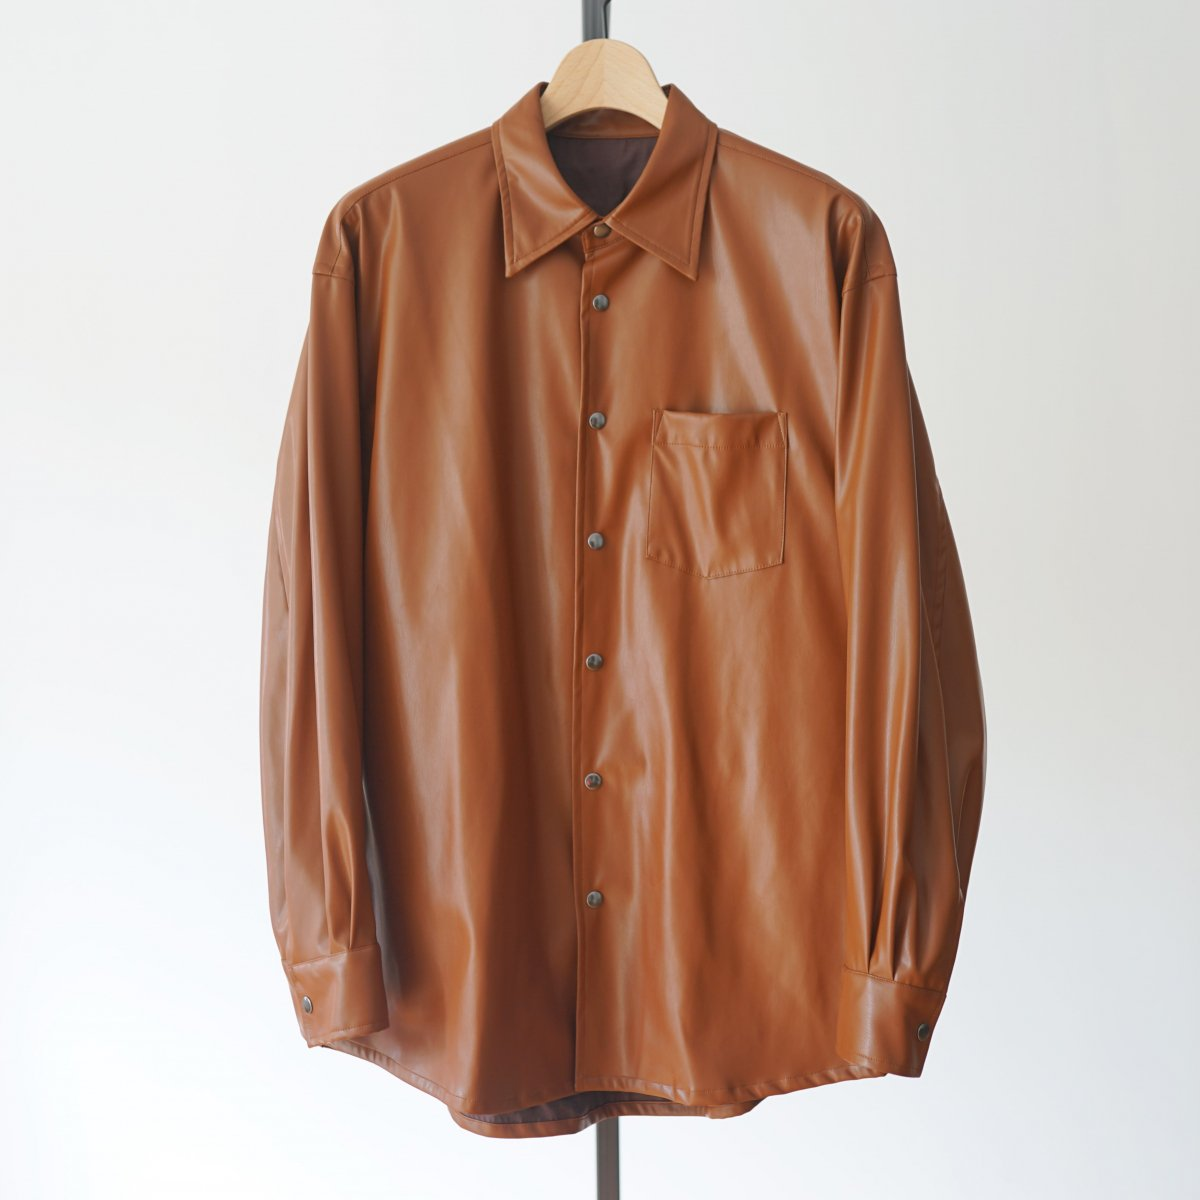 【ALLEGE アレッジ】SYNTHETIC LEATHER SHIRT - BROWN